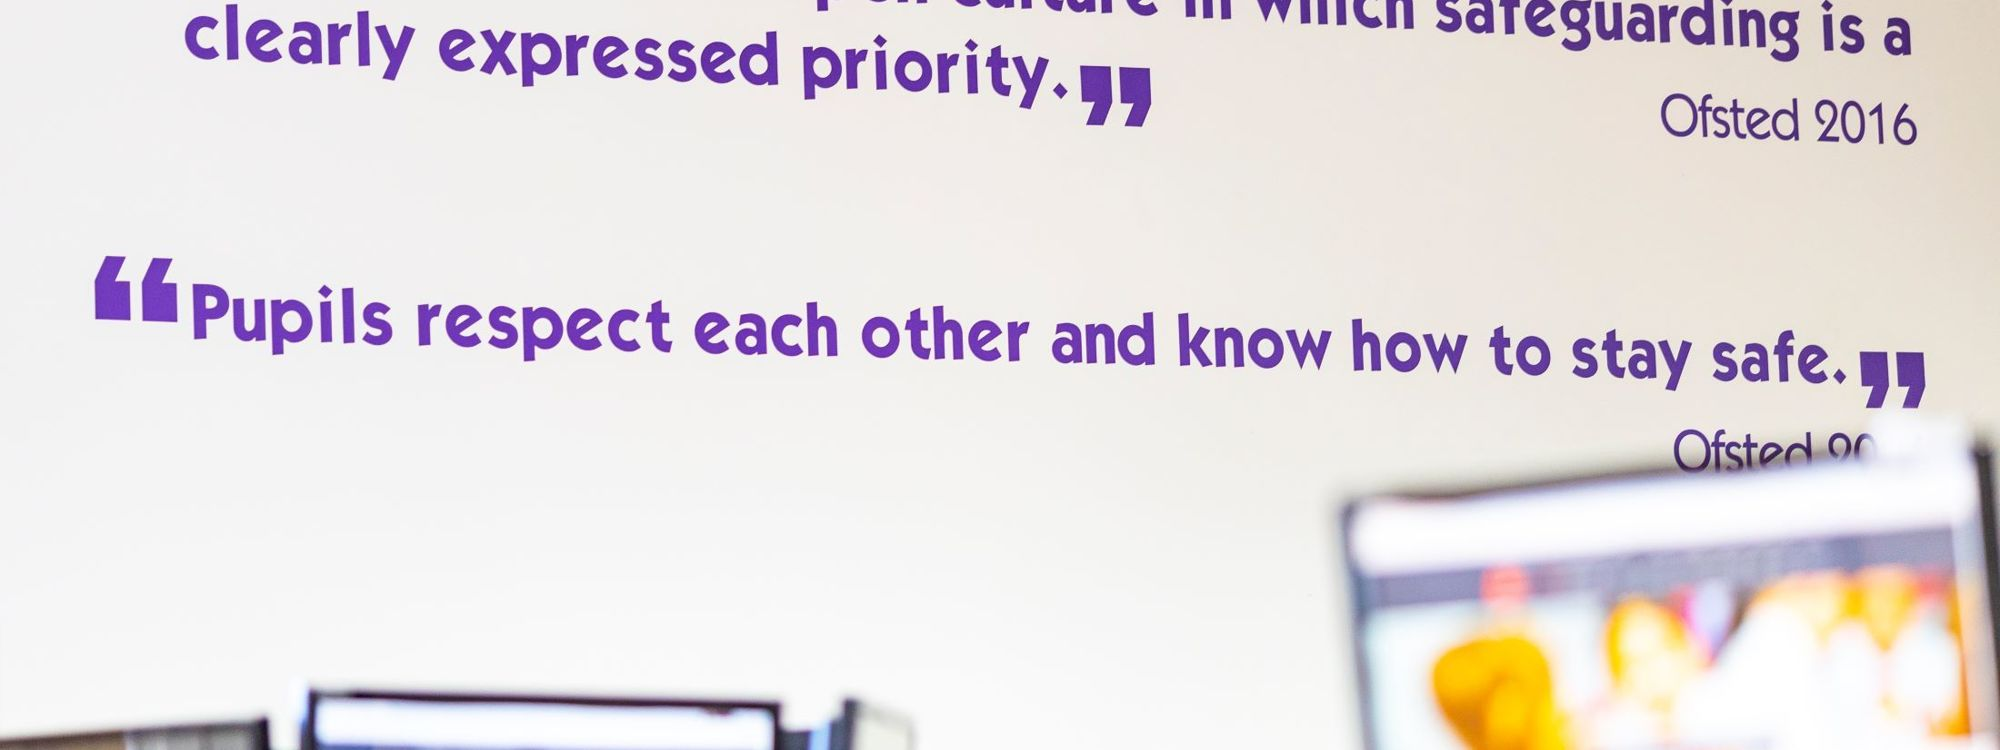 Ofsted quote